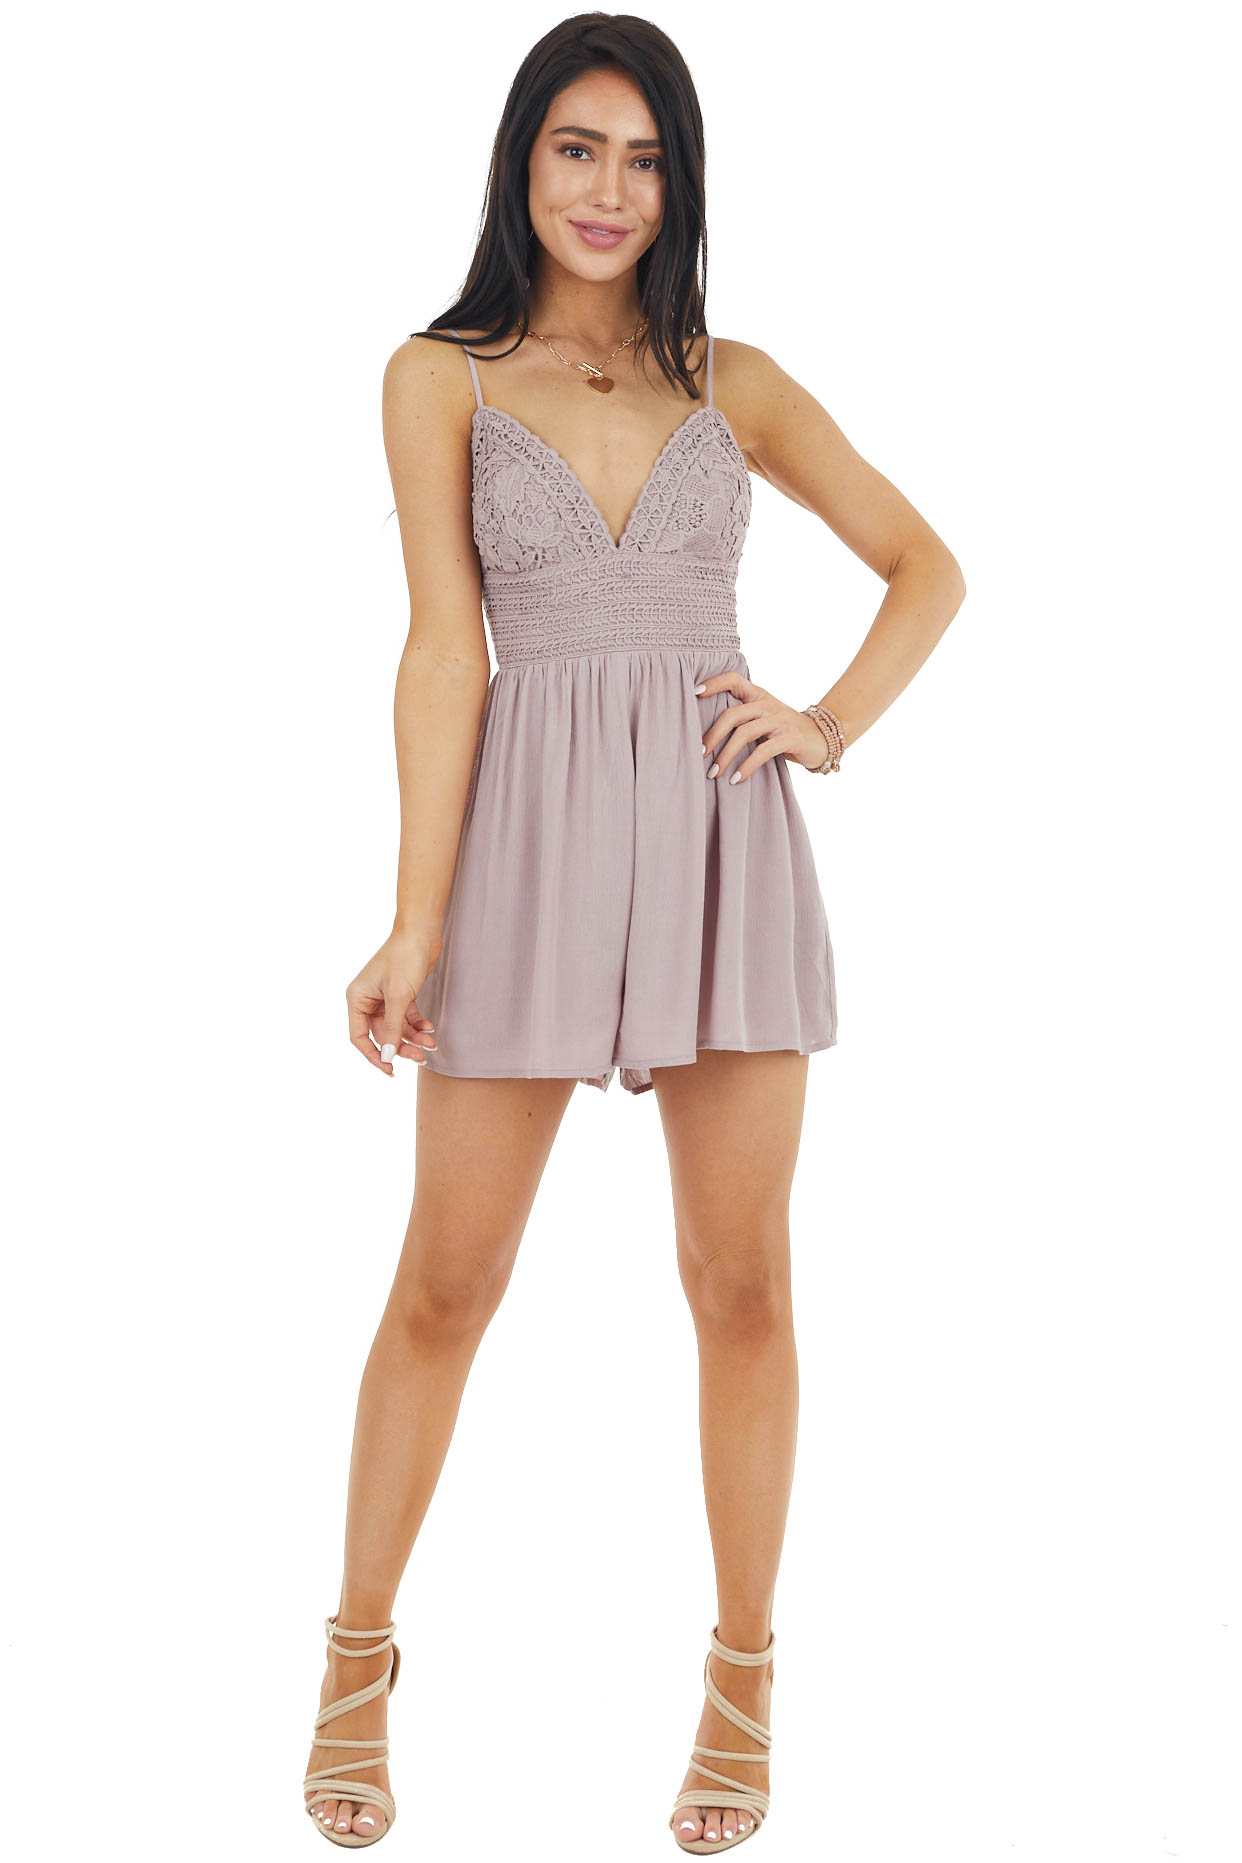 Dusty Lavender Sleeveless Romper with Crochet Lace Details